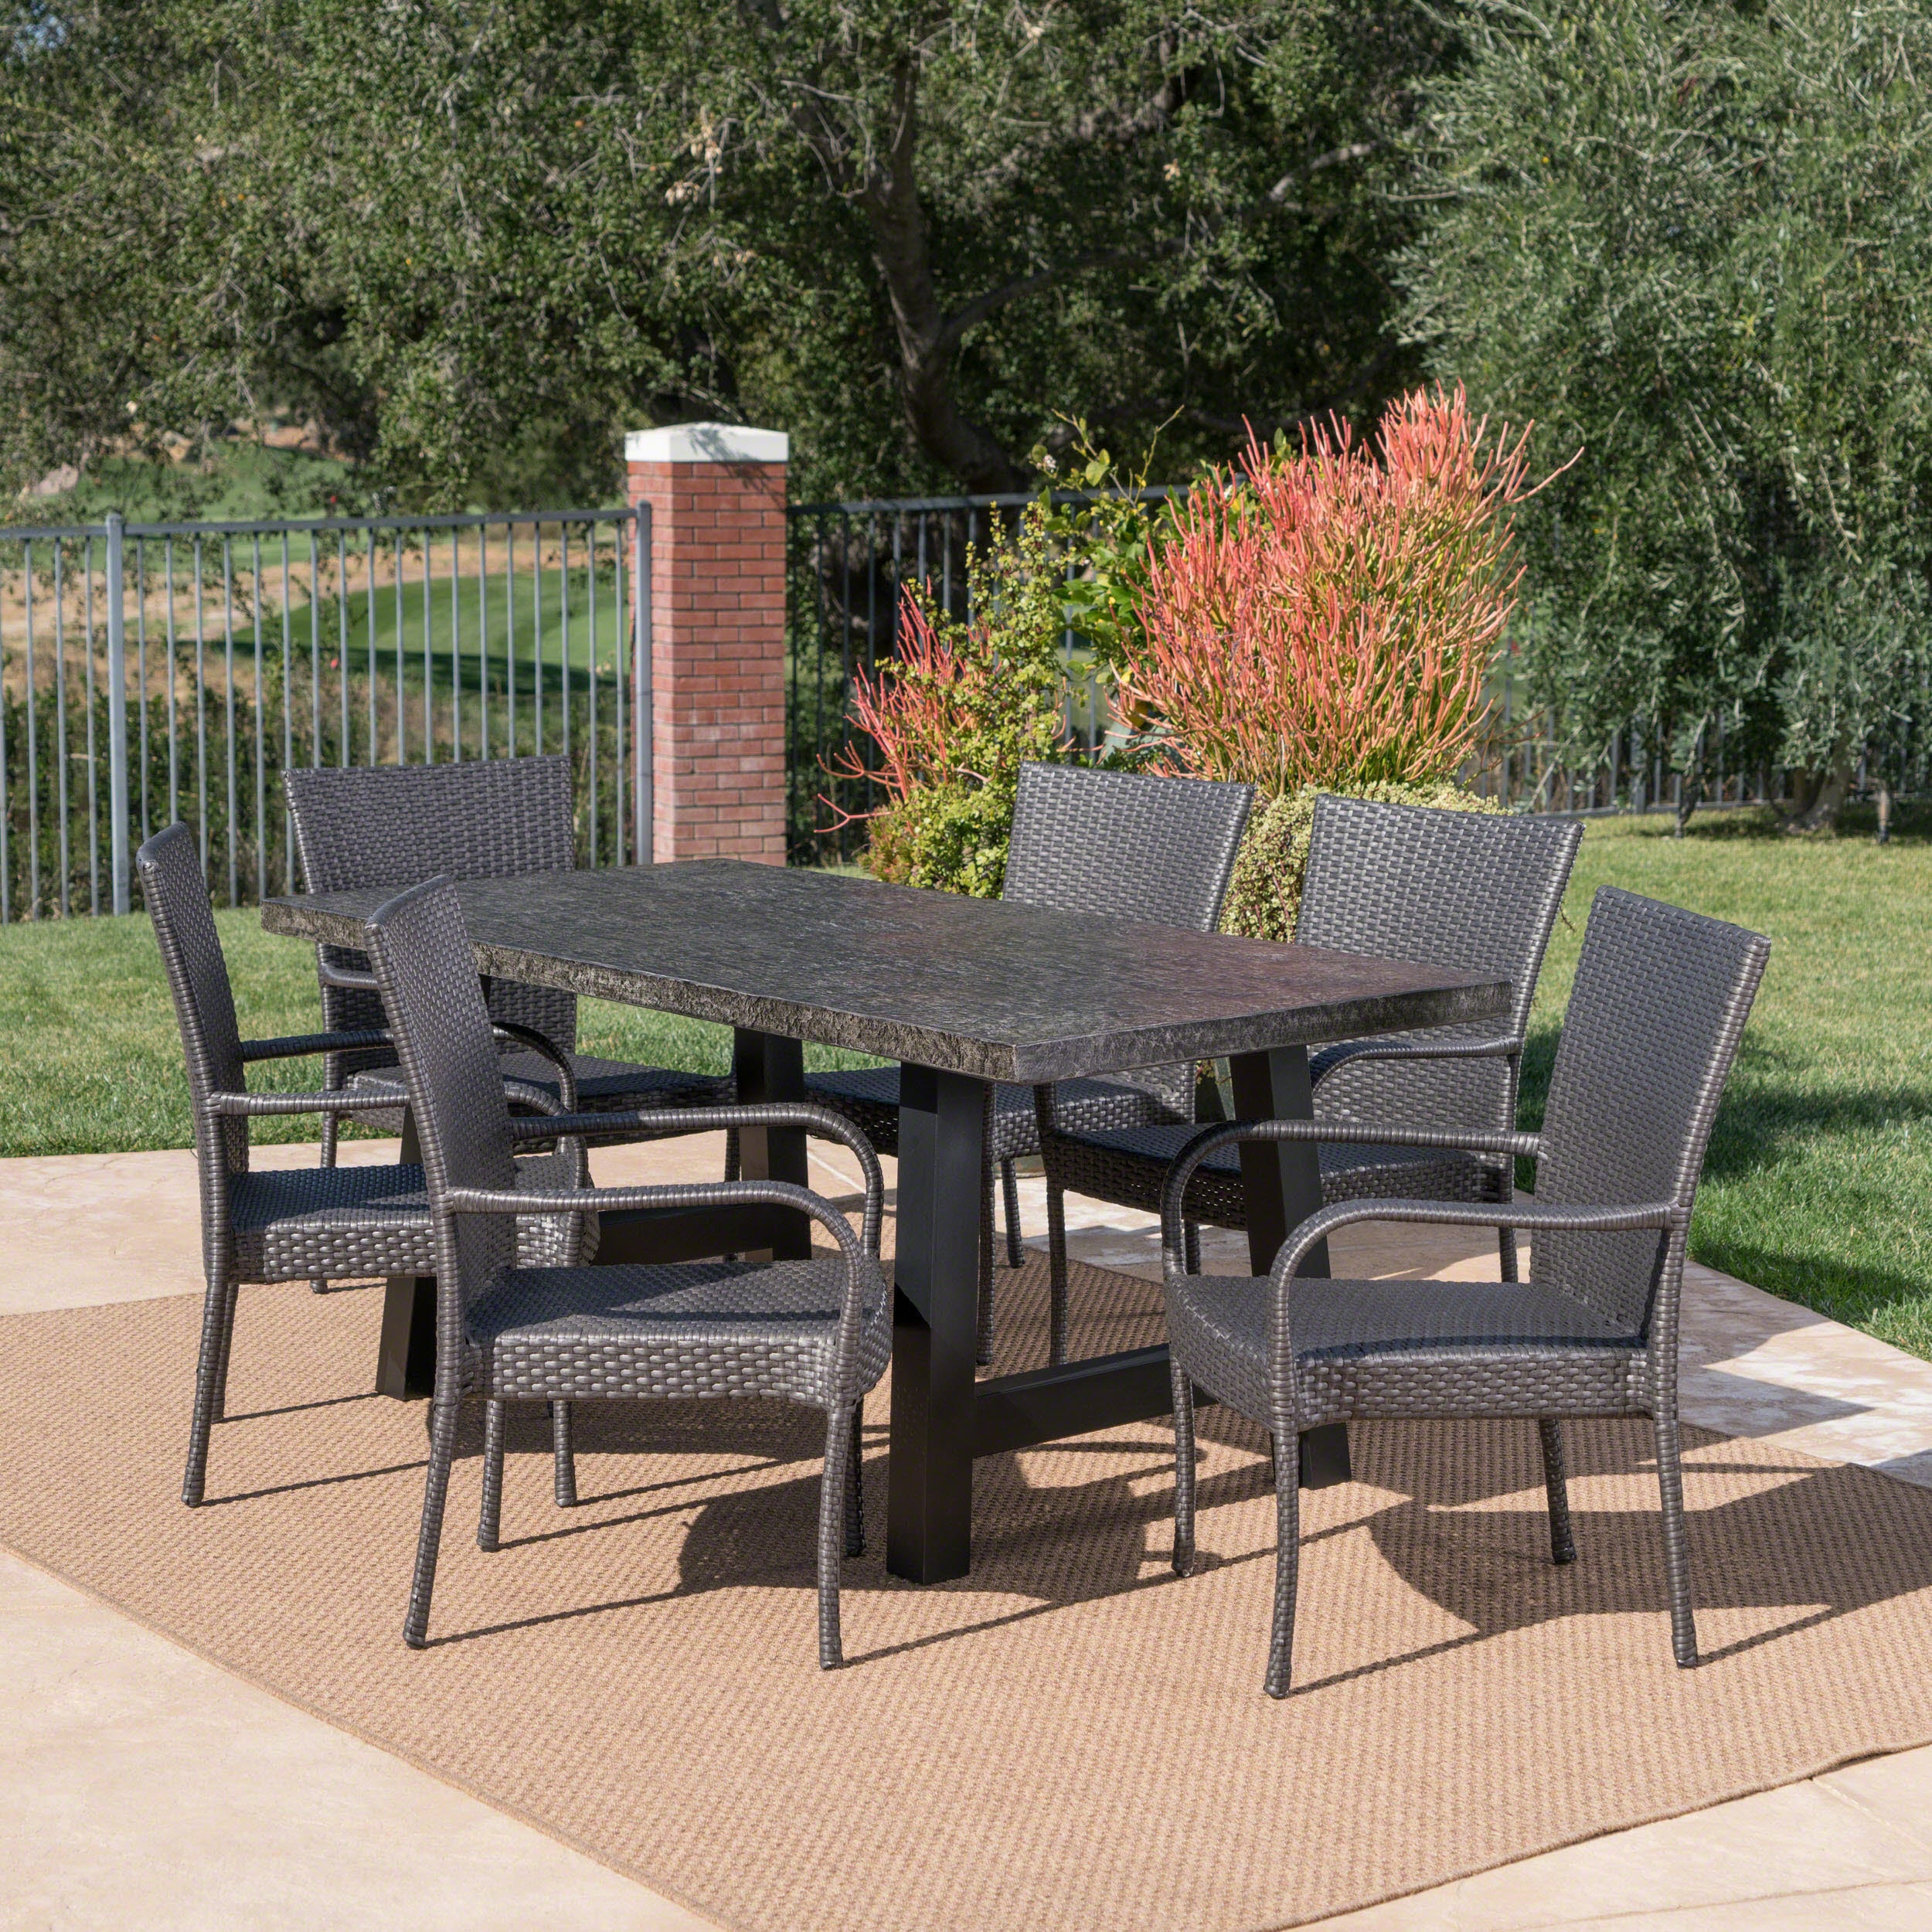 Charmant Shop Pelican Outdoor 7 Piece Rectangle Light Weight Concrete Wicker Dining  Set By Christopher Knight Home   Free Shipping Today   Overstock.com    20301169